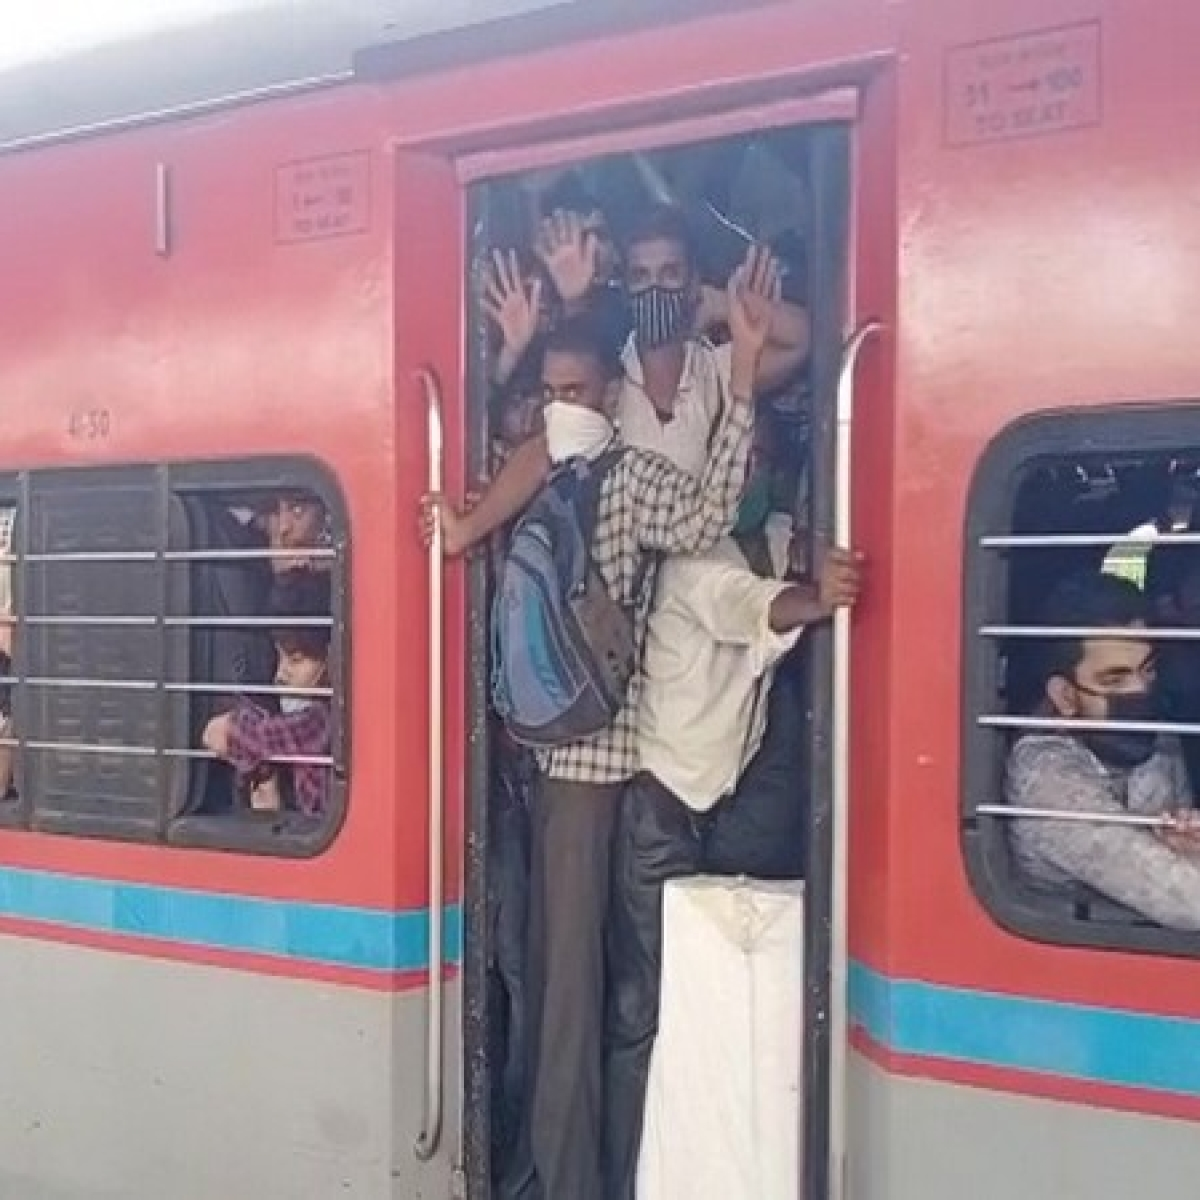 Migrant labourers leave Mumbai in packed trains fearing lockdown